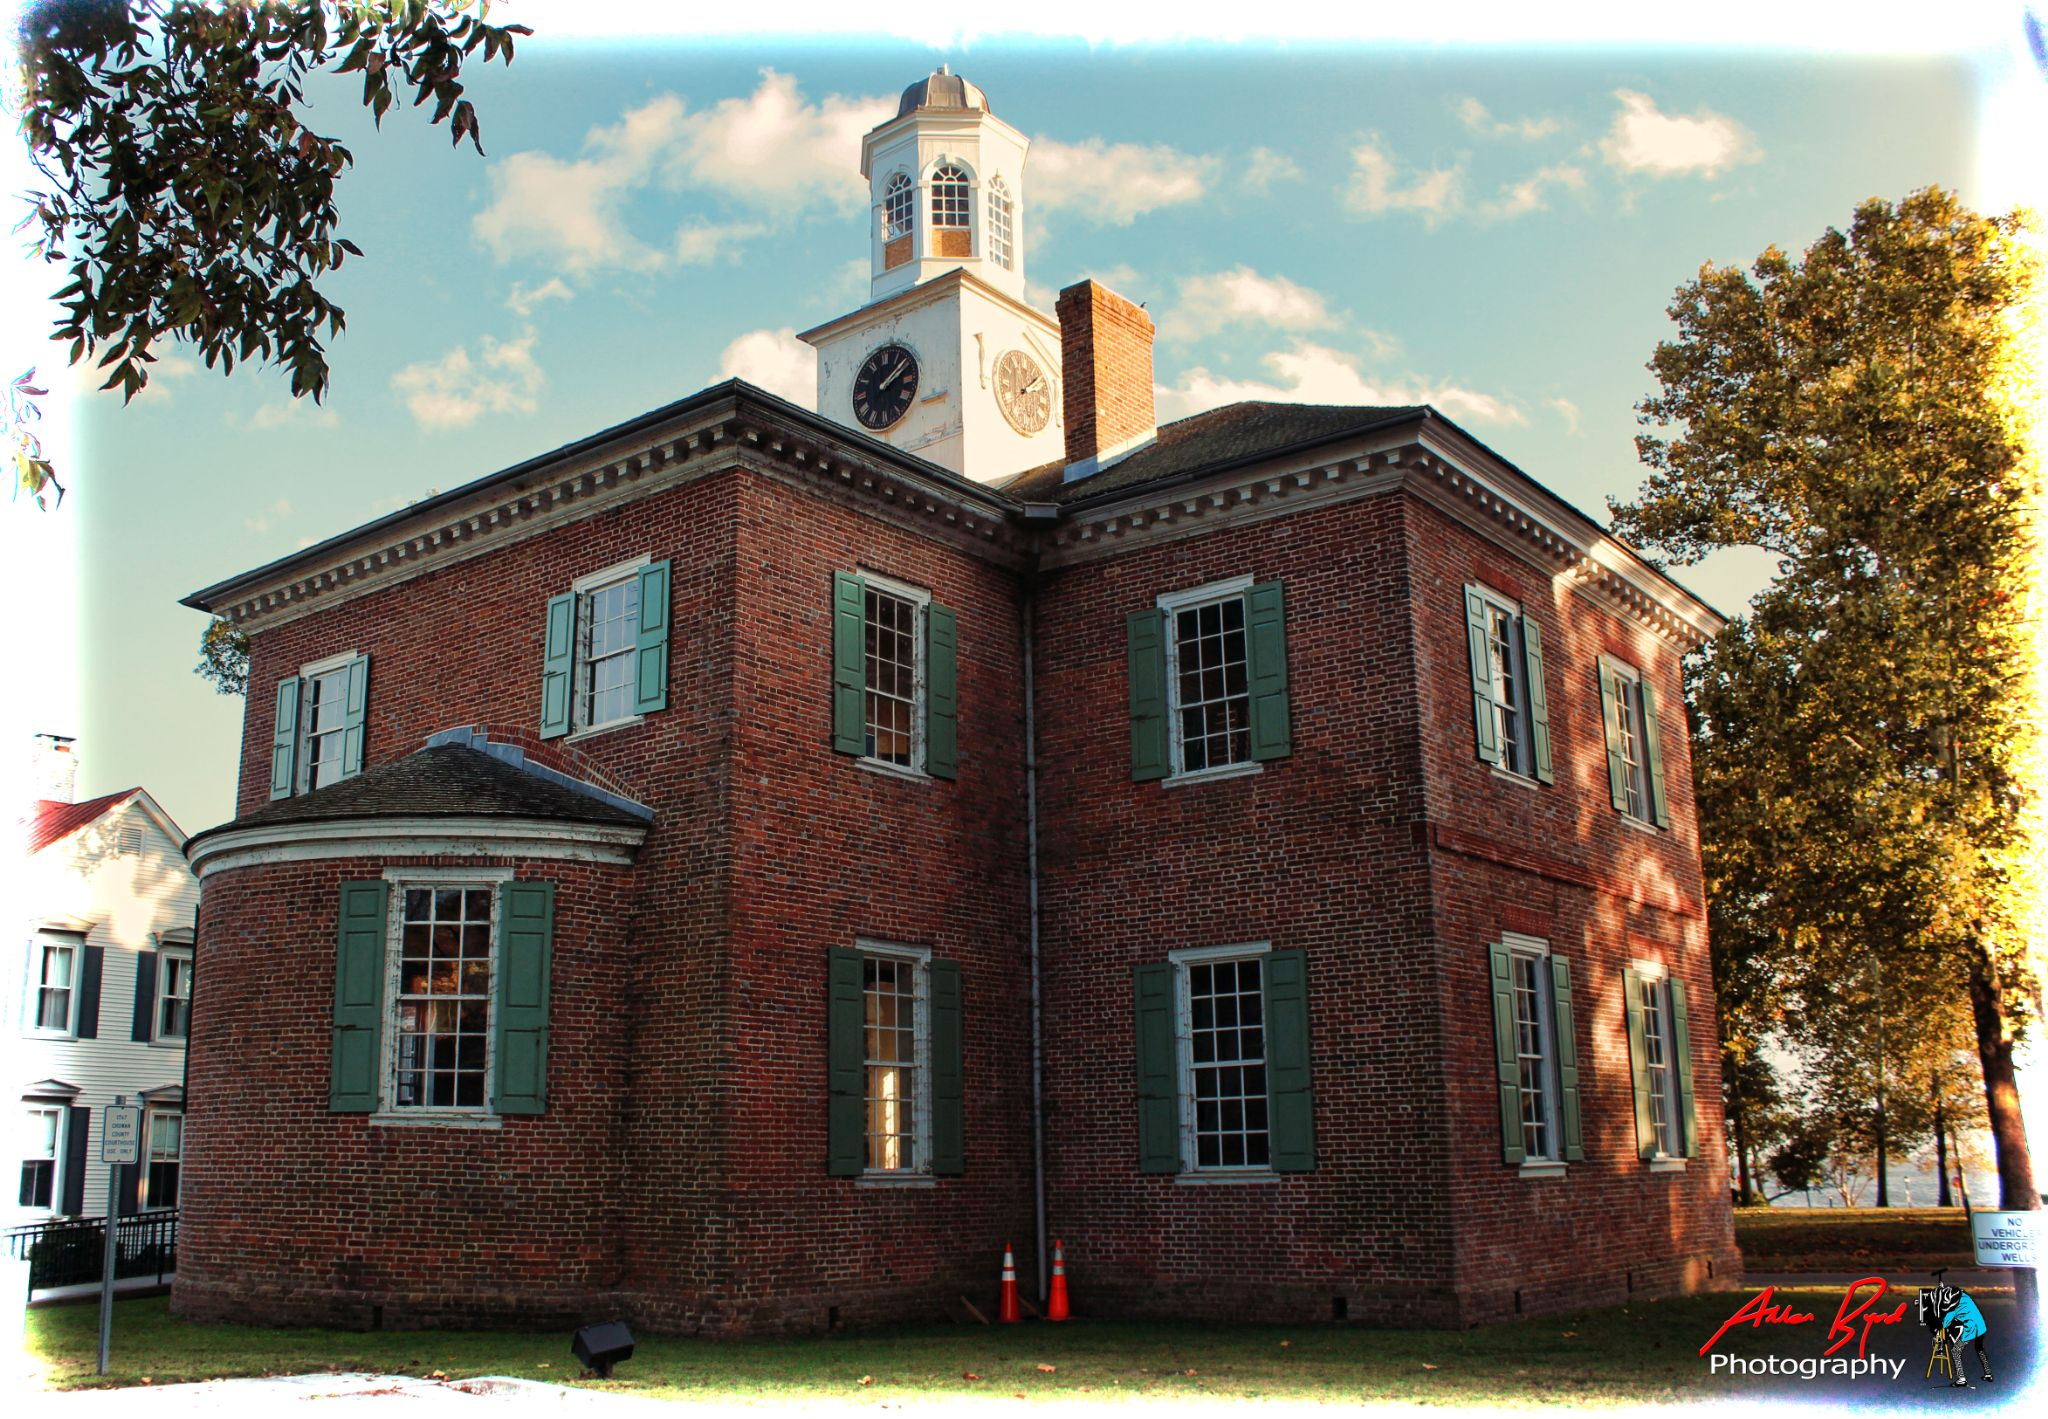 edenton courthouse-4 by Allen Byrd Photography